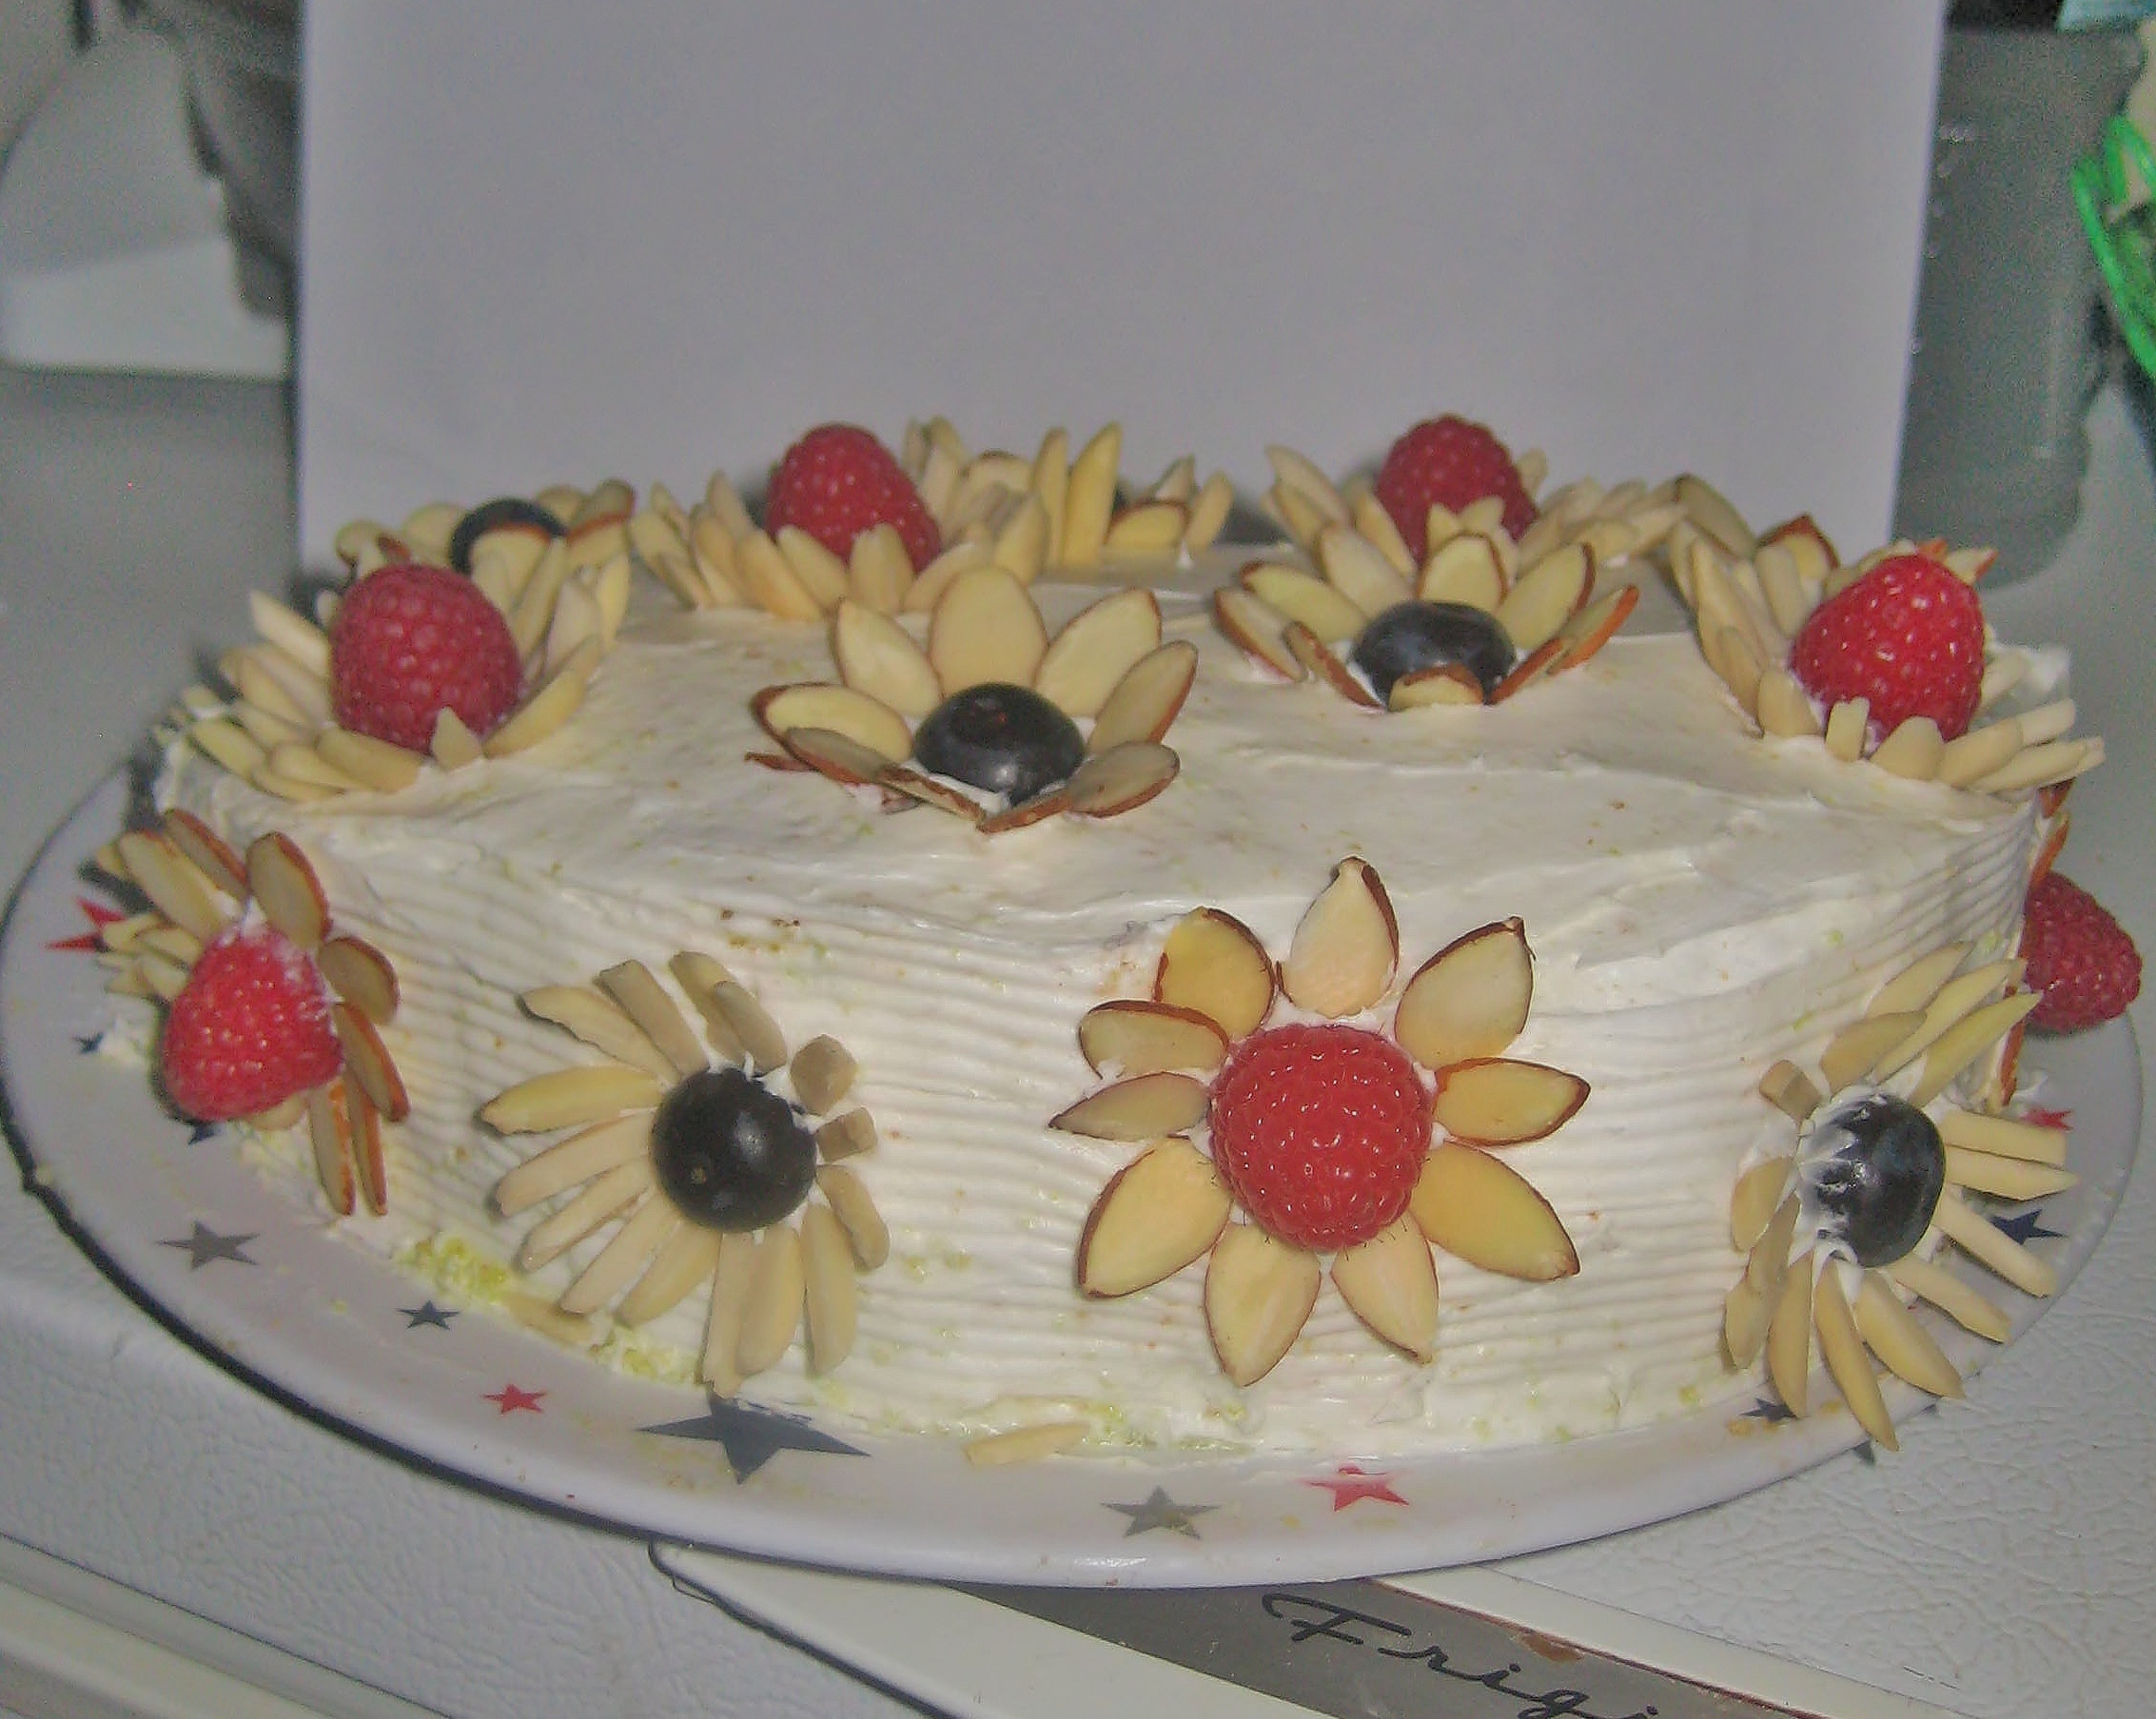 Lemon Lime Cake with Berry Almond Flowers